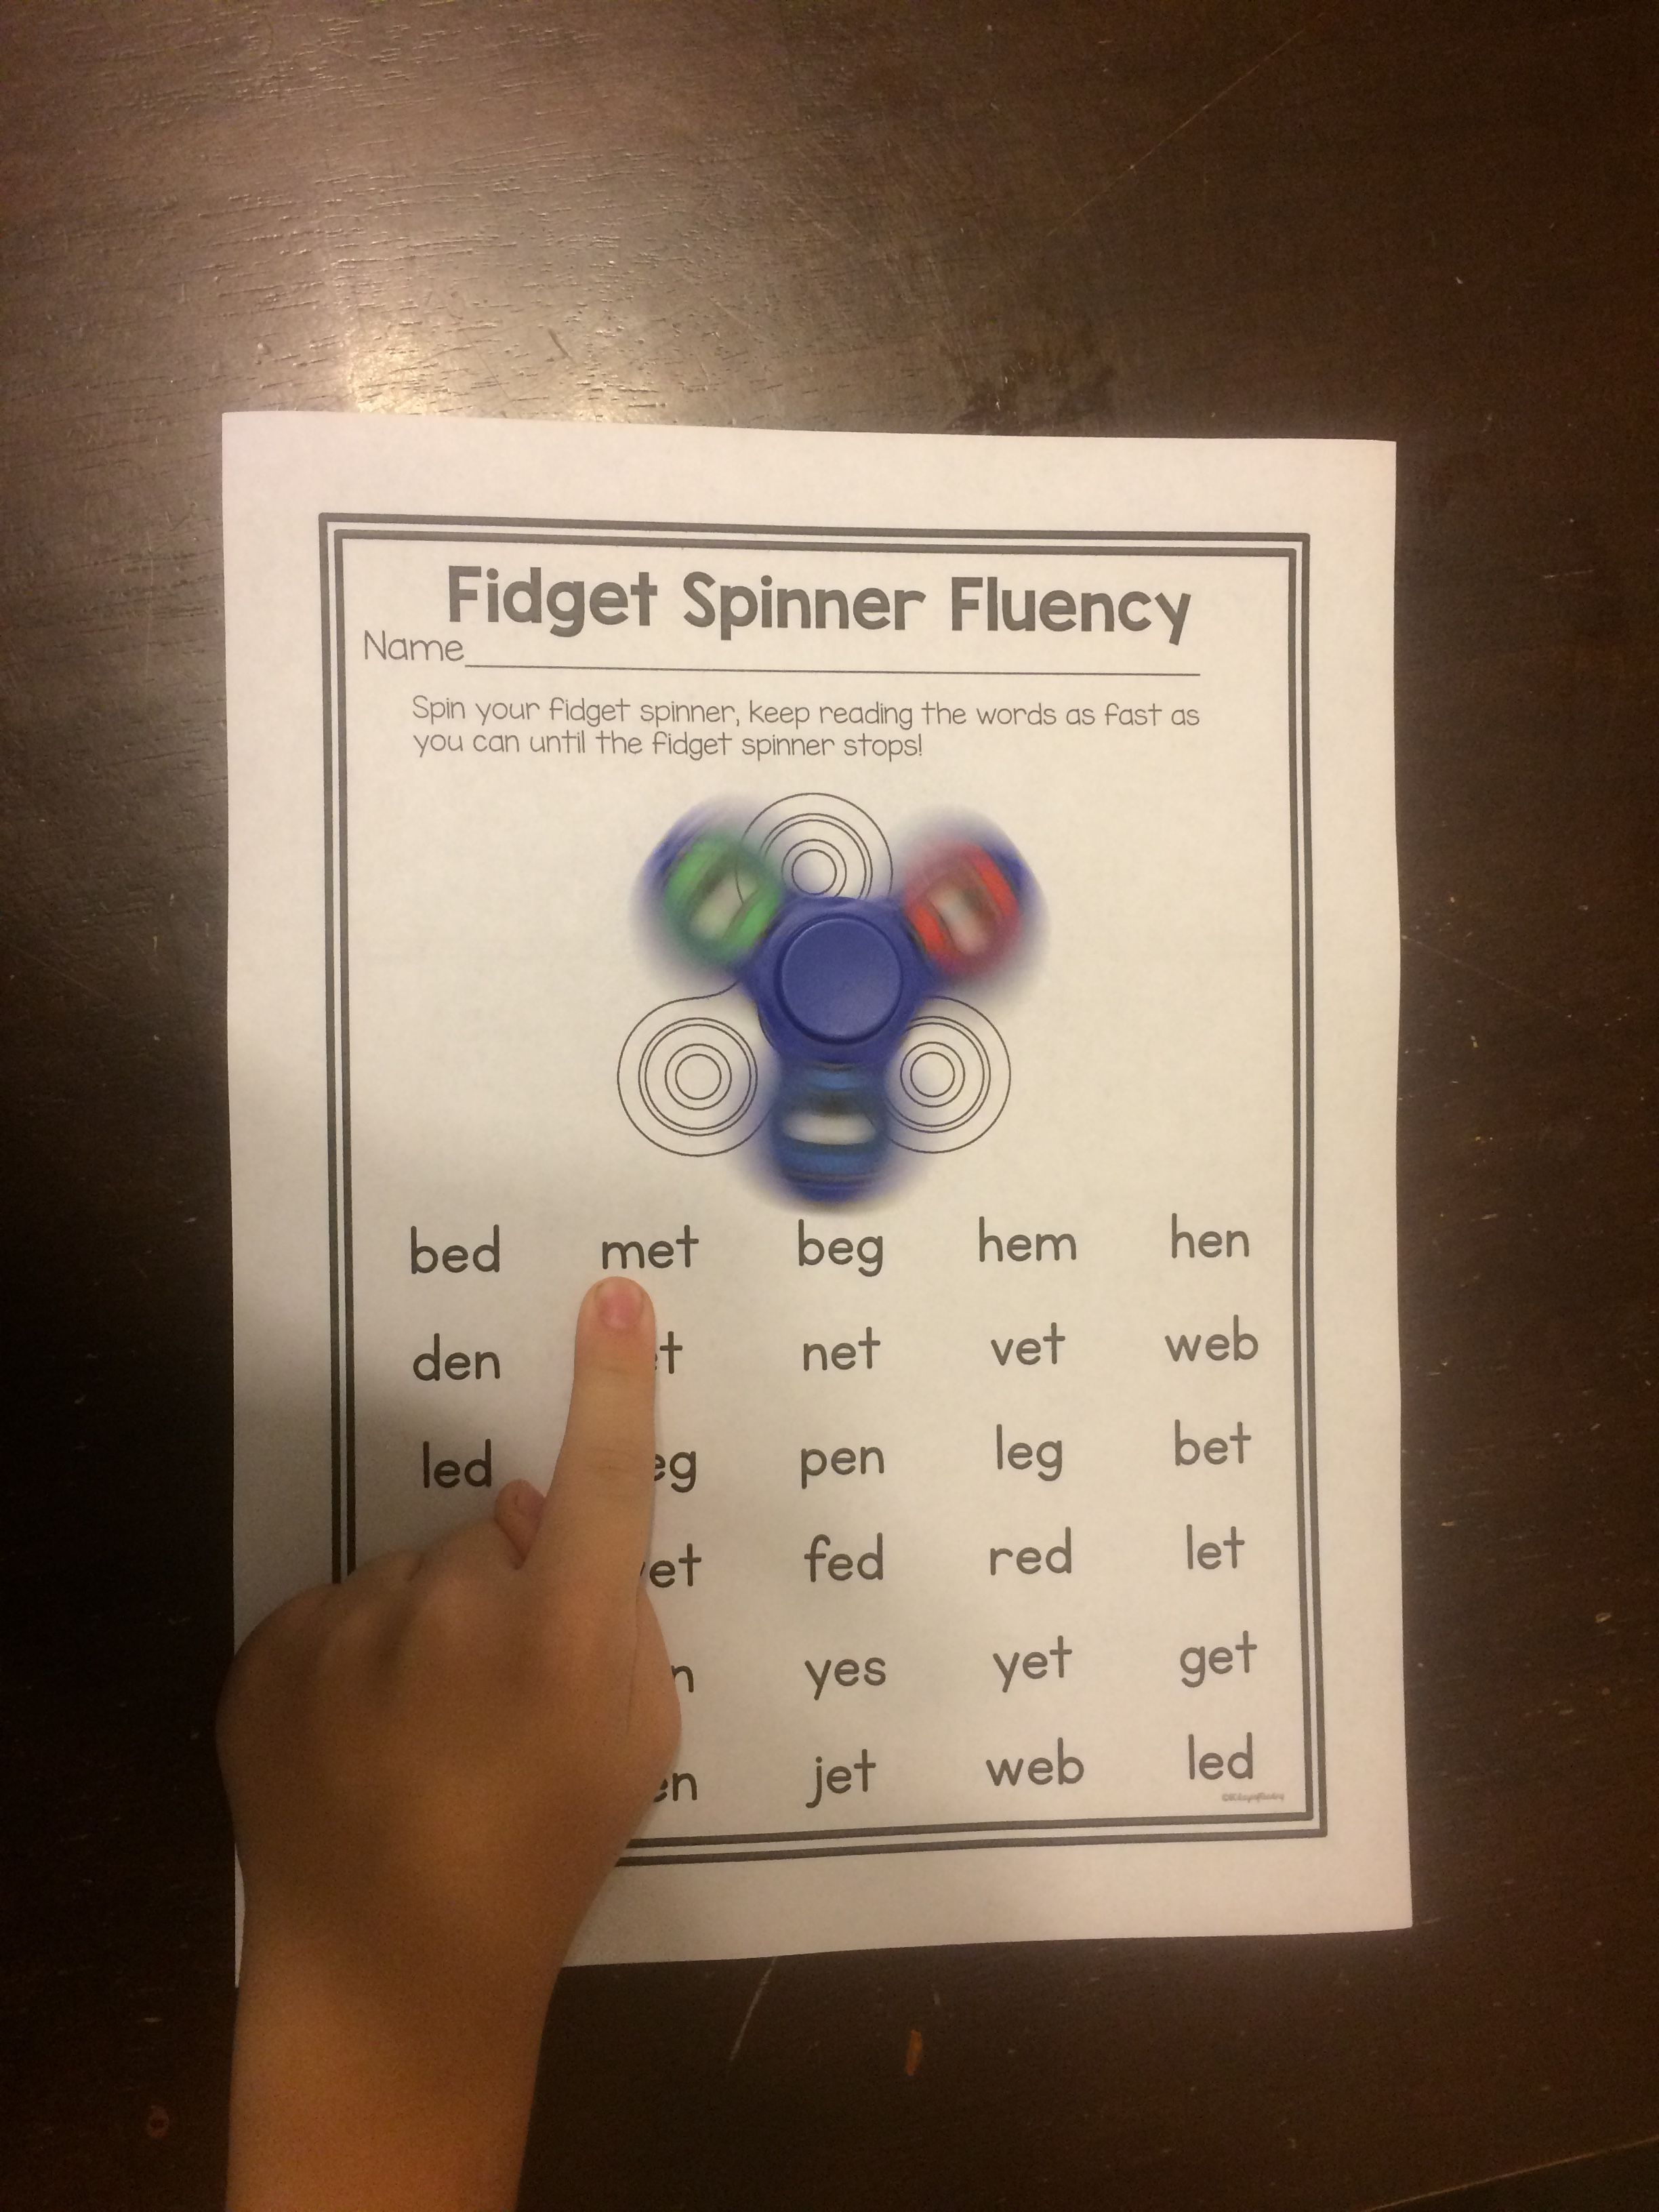 Fidget Spinners Are All The Craze Right Now Turn Them Into A Fluency Practice With This